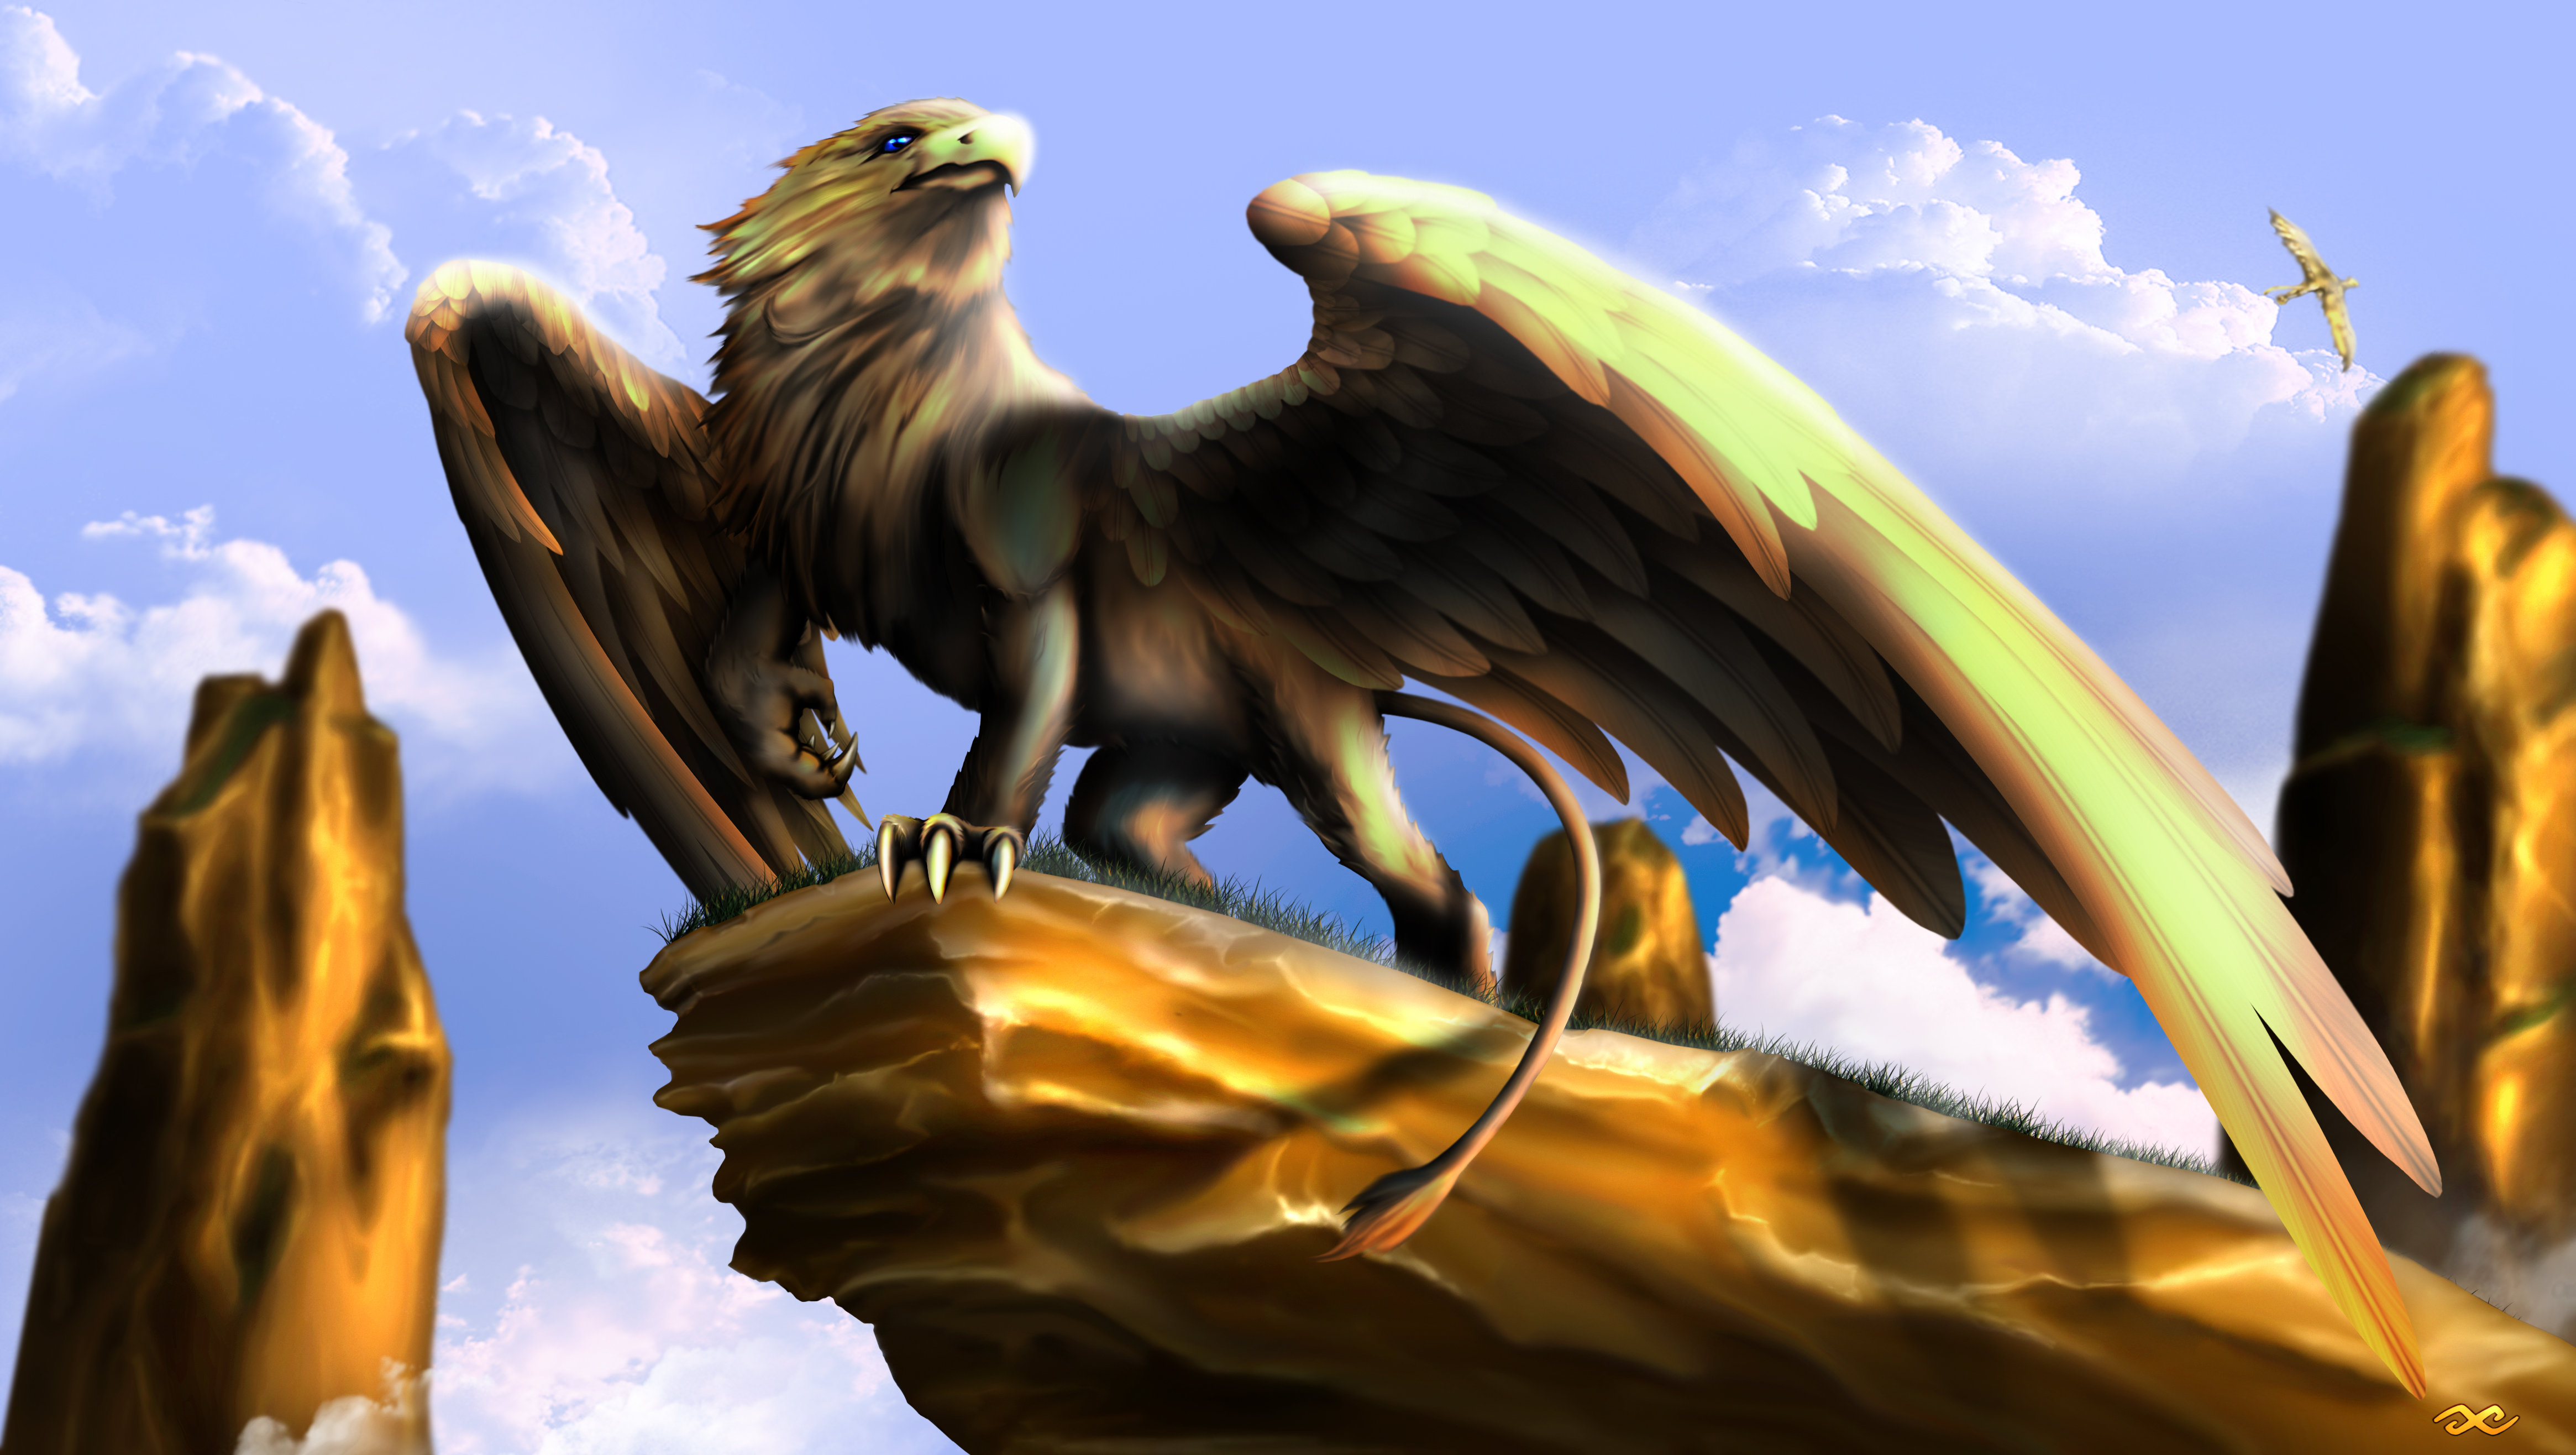 Griffin by guillaume phoenix on deviantart for The griffin